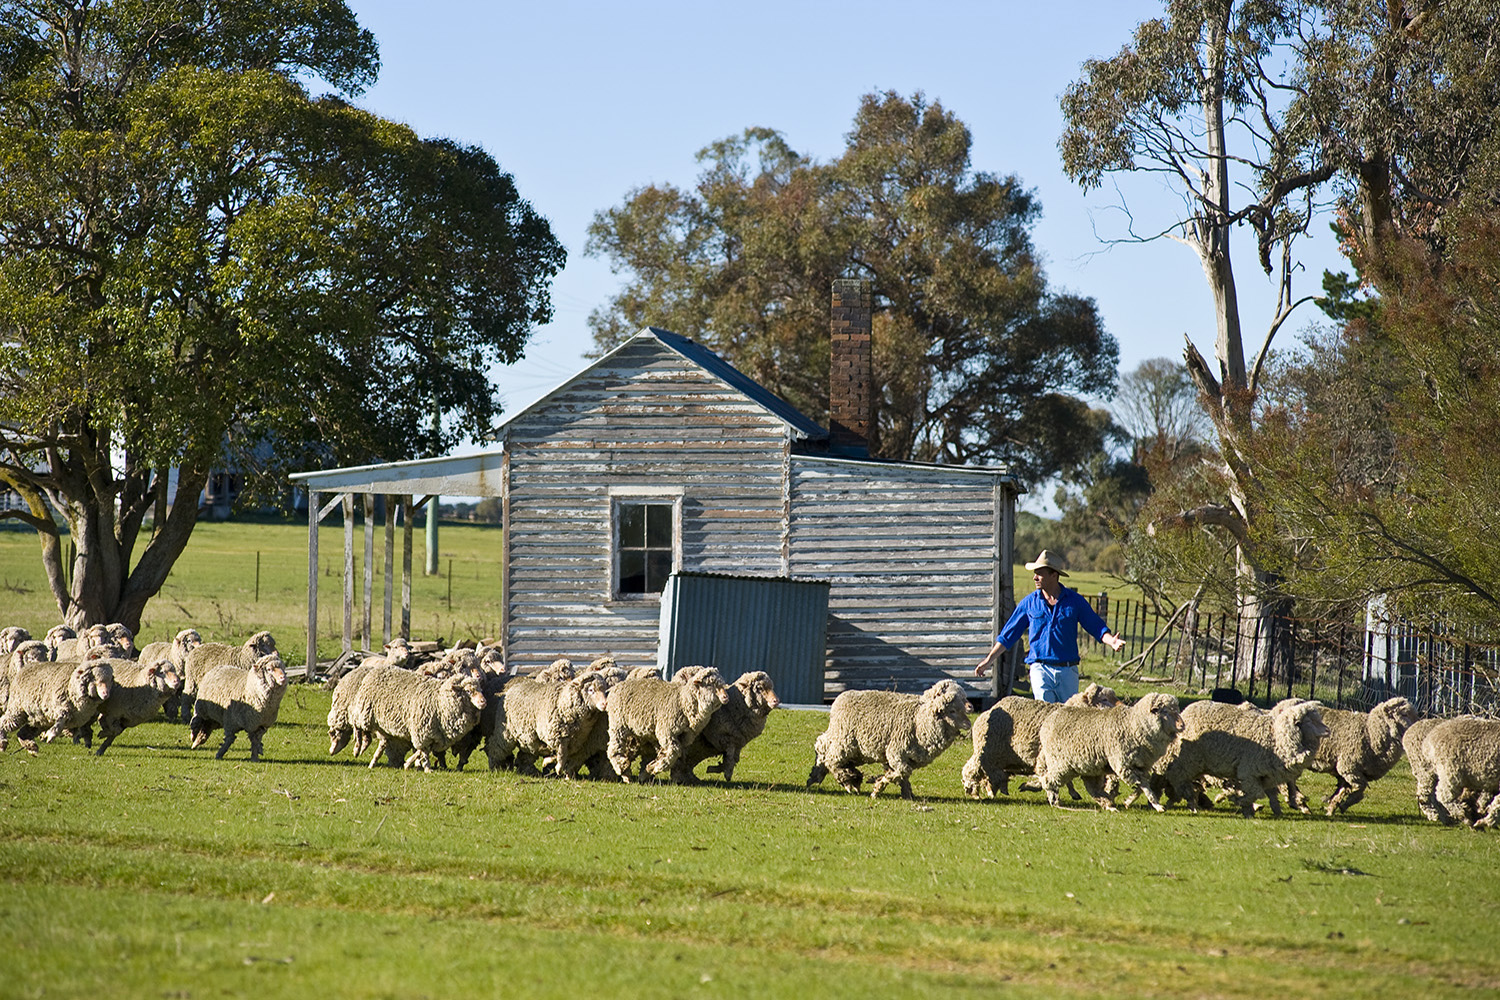 image of AARONTAIT COPYRIGHTED 2014 371 MUSTER RURAL PHOTOGRAPHER FARM LIFE AGRICULTURE WOOL BEEF STOCKMAN MUSTER CATTLE FARM AUSTRALIAN FLOCK SHEEP